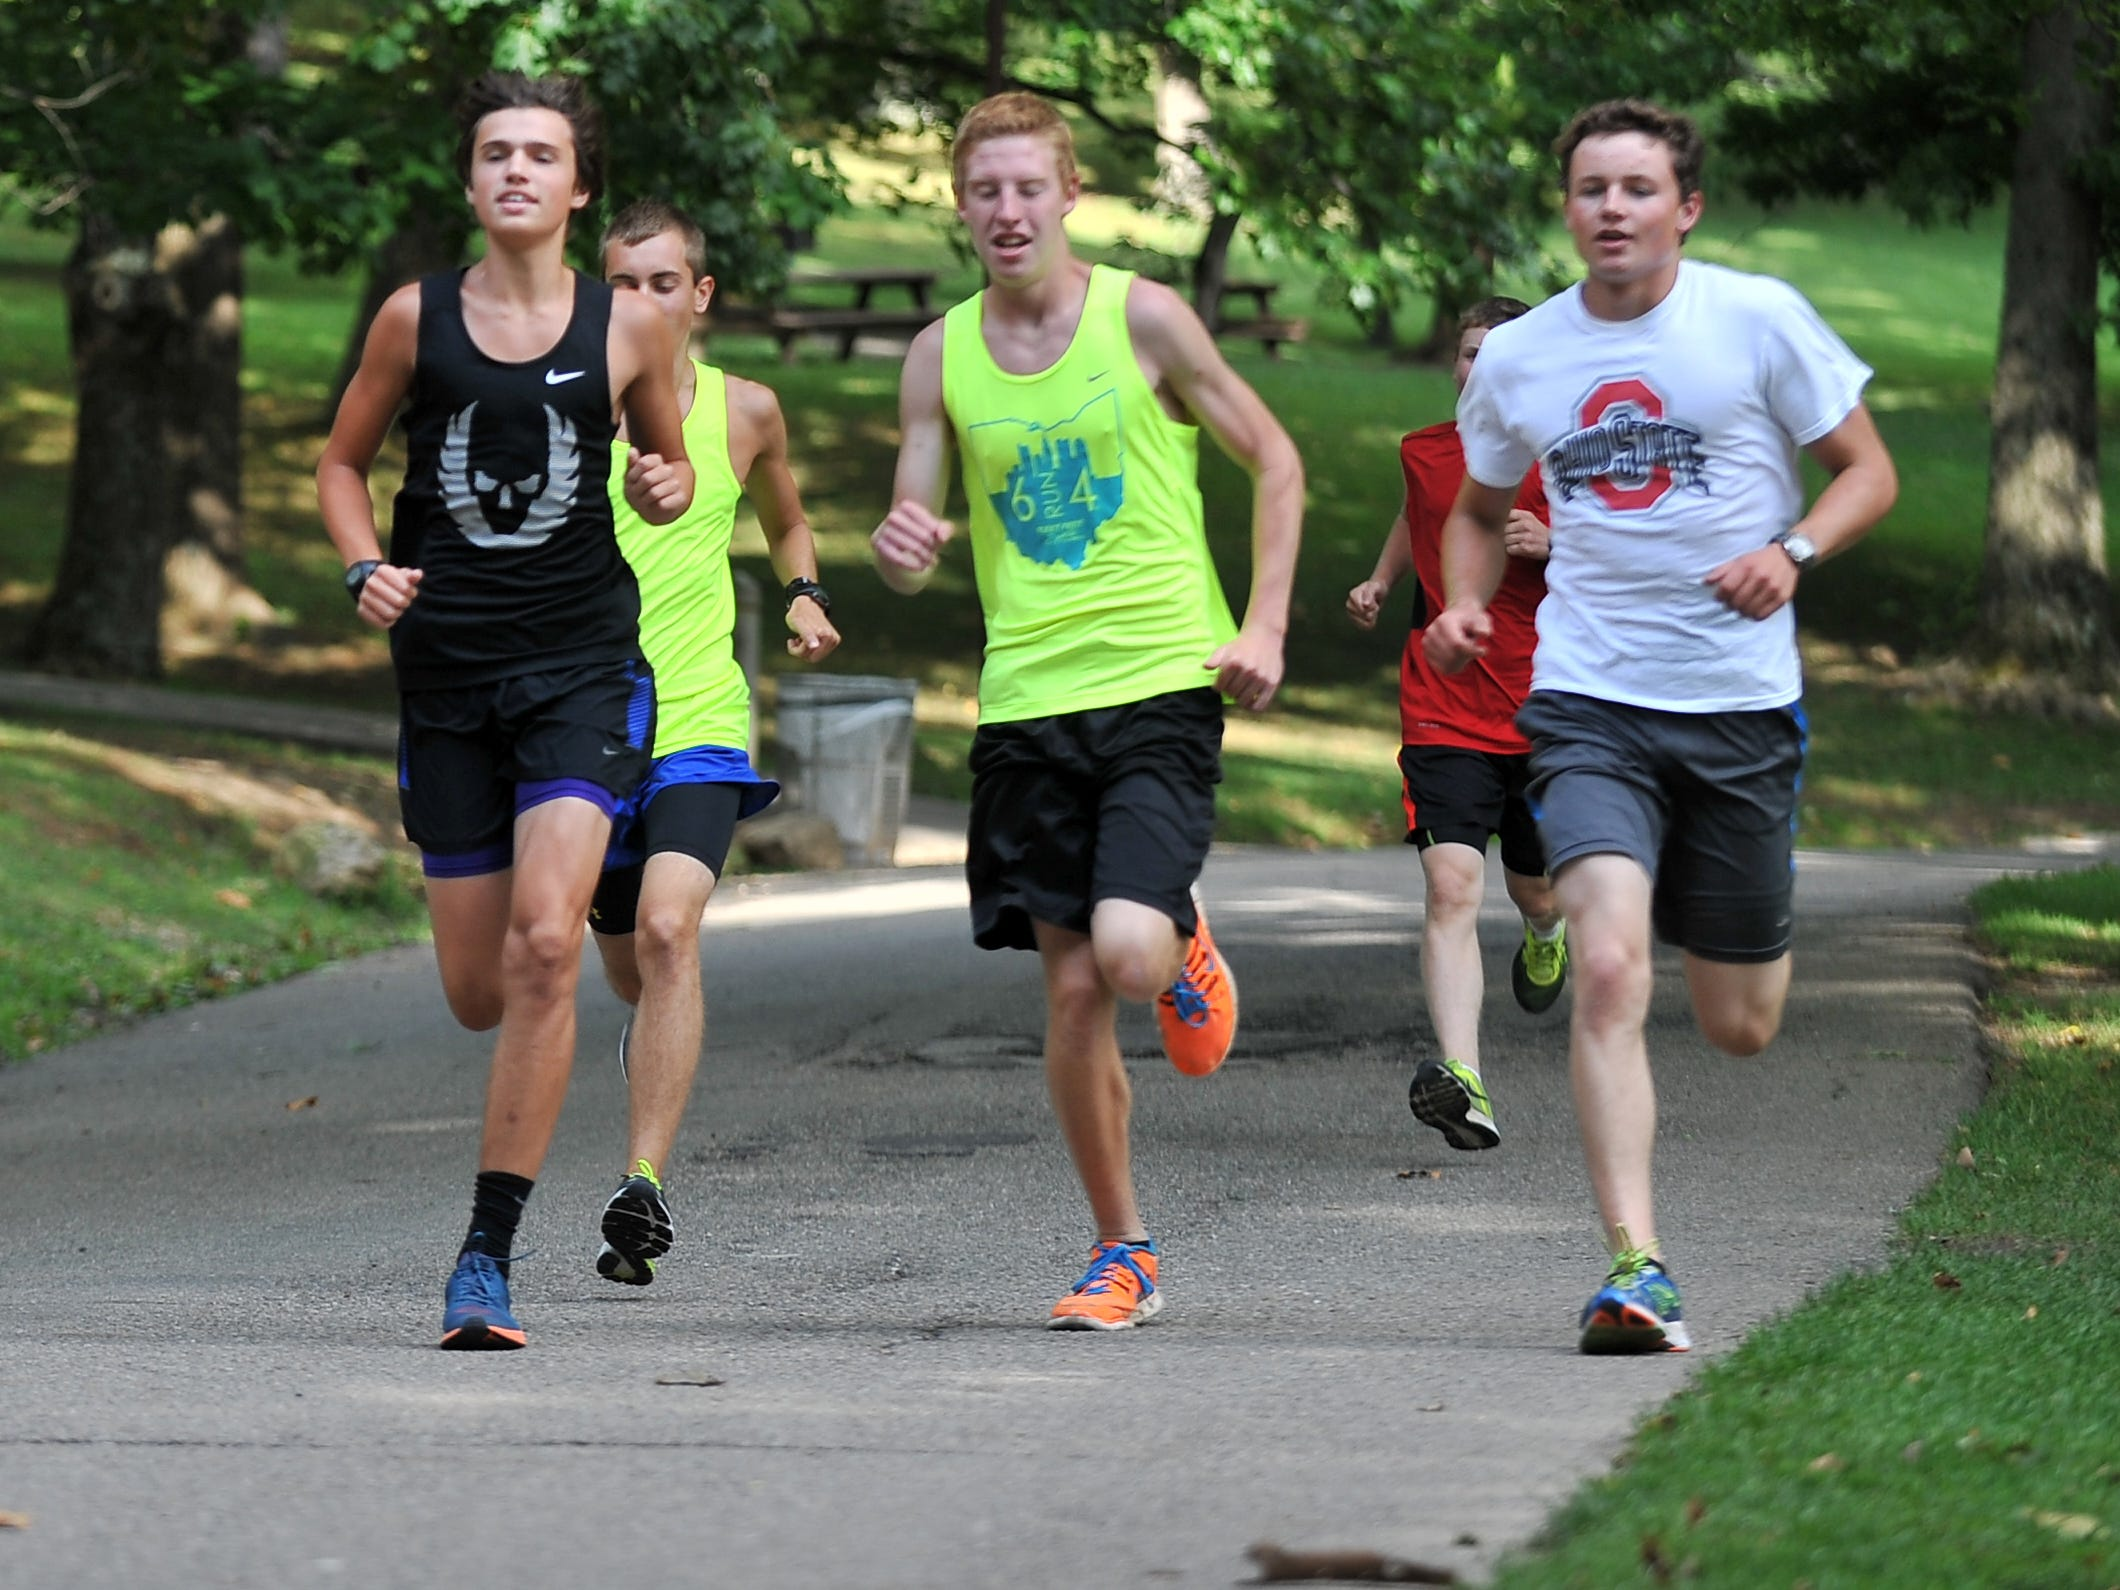 Jacob Thompson, left, Noah Davis, center, and Eric Hoover run Aug. 12 at Rising Park in Lancaster during Fairfield Christian Academy's cross country practice.